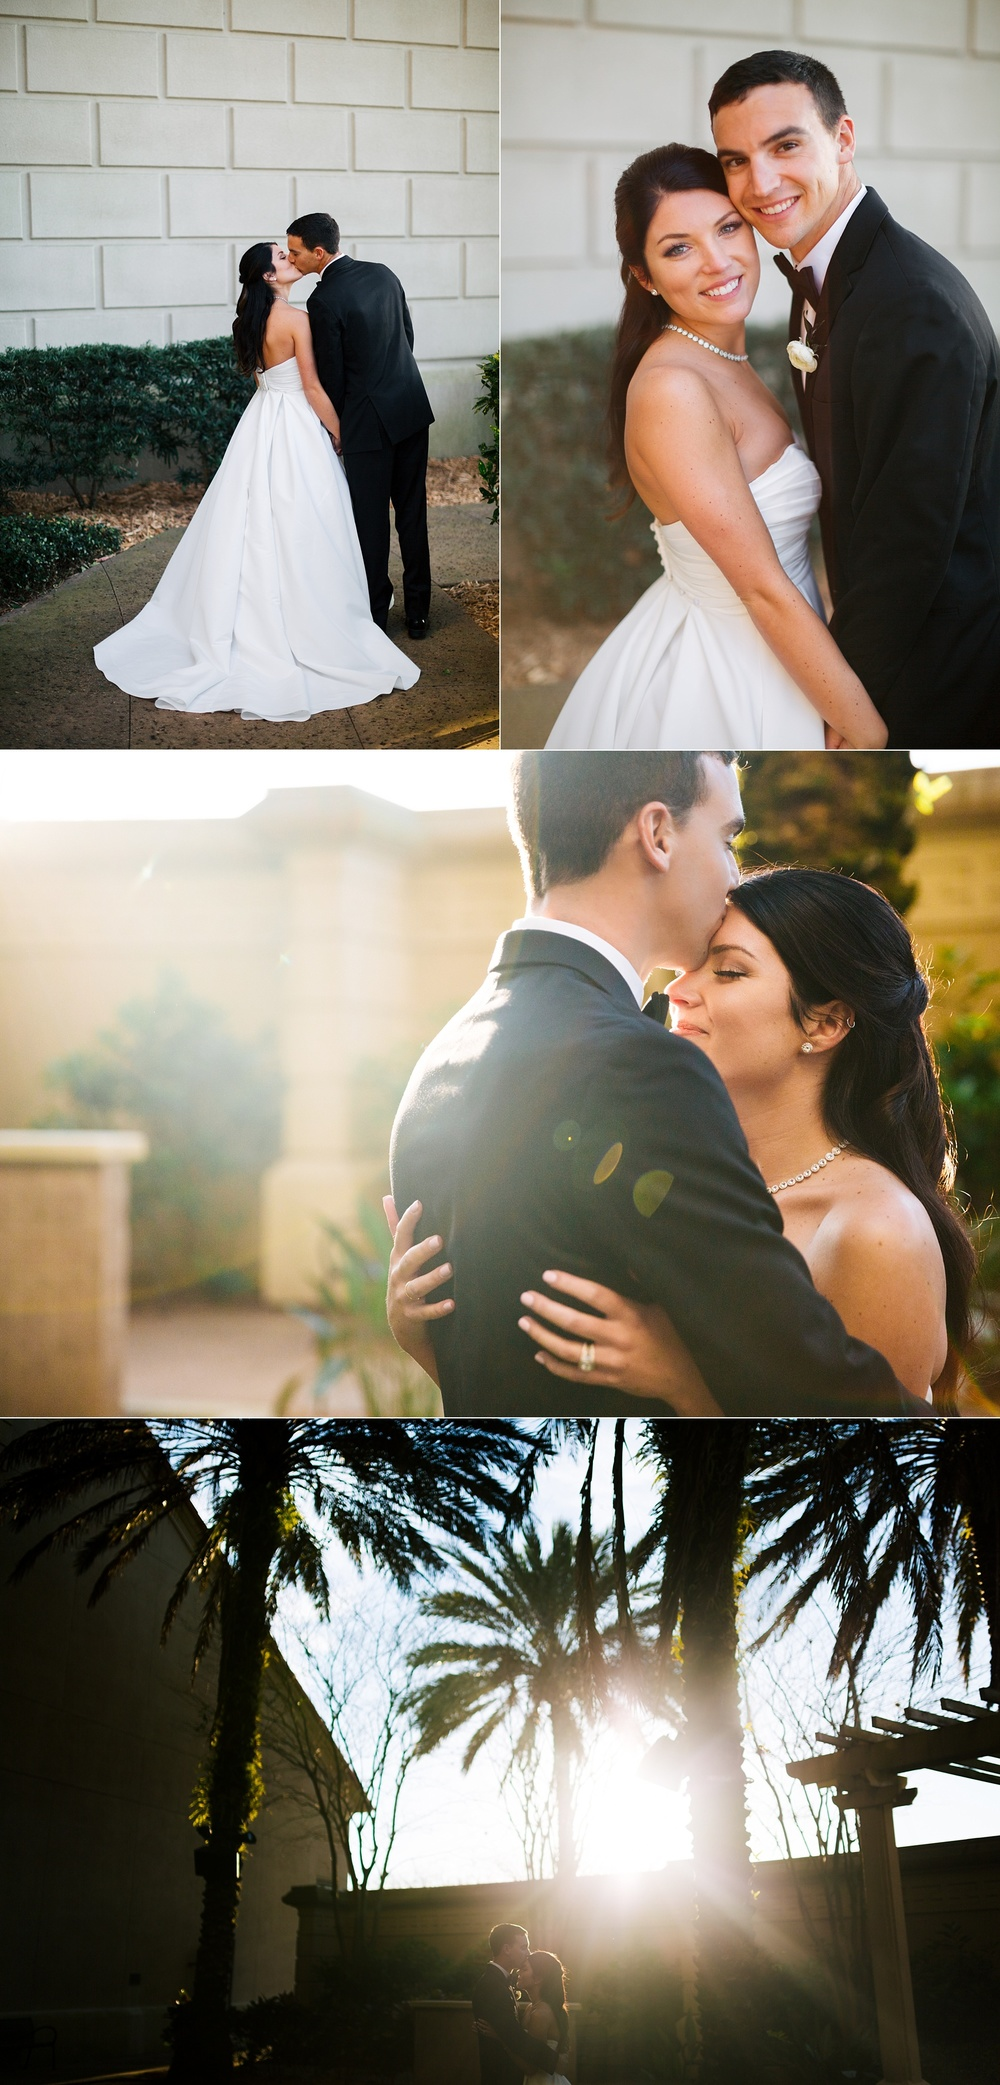 tampa wedding photographer luke haley-19